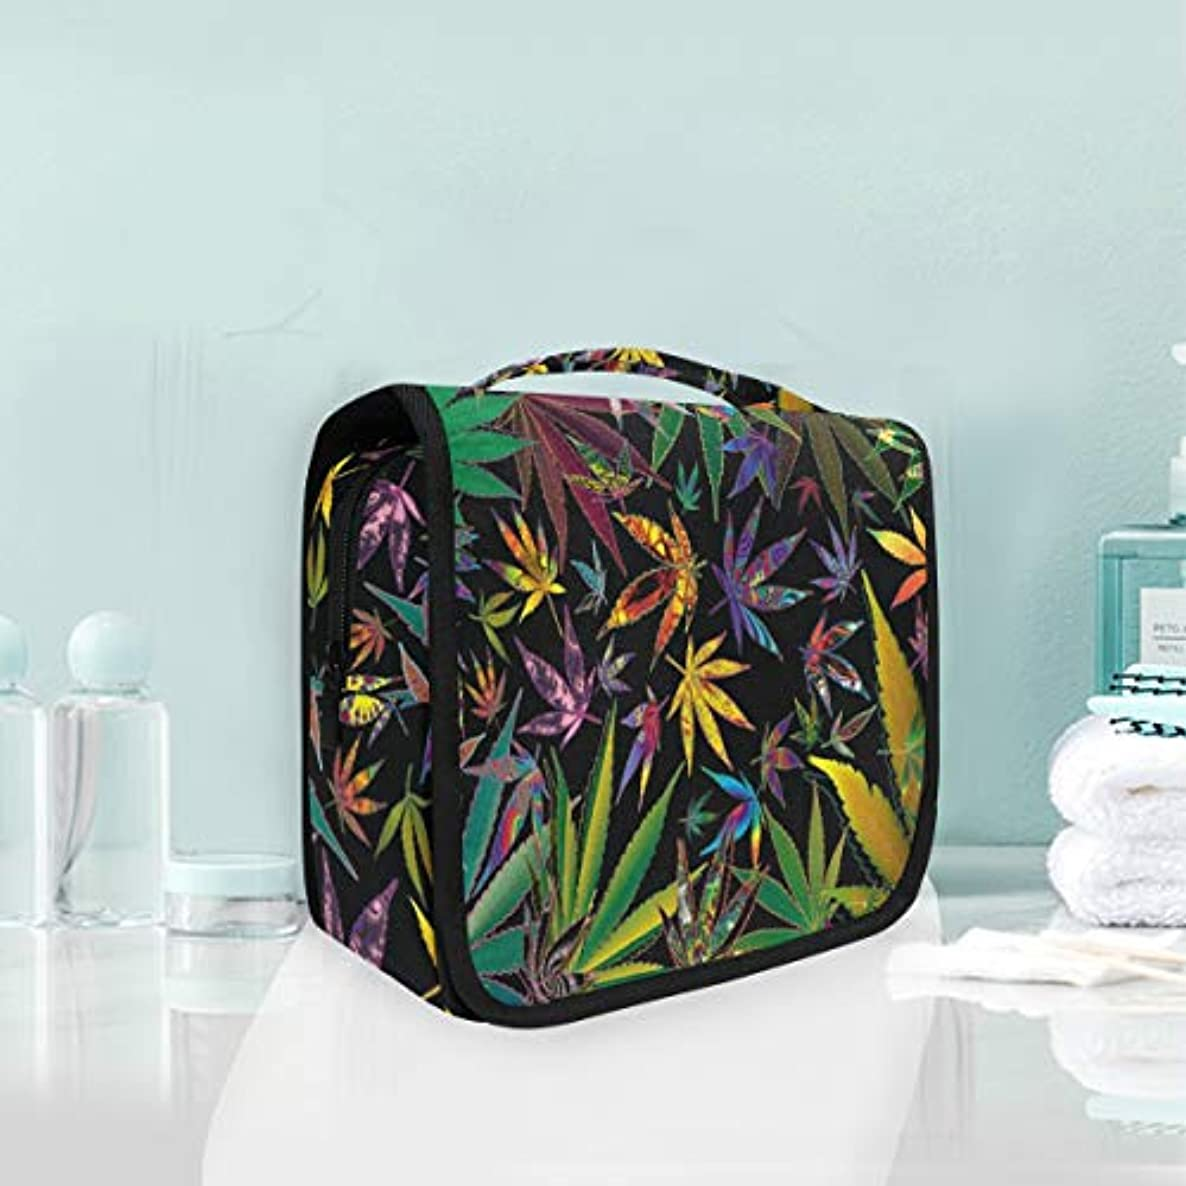 SLHFPX Colorful Cannabis Leaf Toiletry Bag Multifunction Cosmetic Bag Portable Makeup Pouch Waterproof Travel Hanging Organizer Bag for Women Men Girls